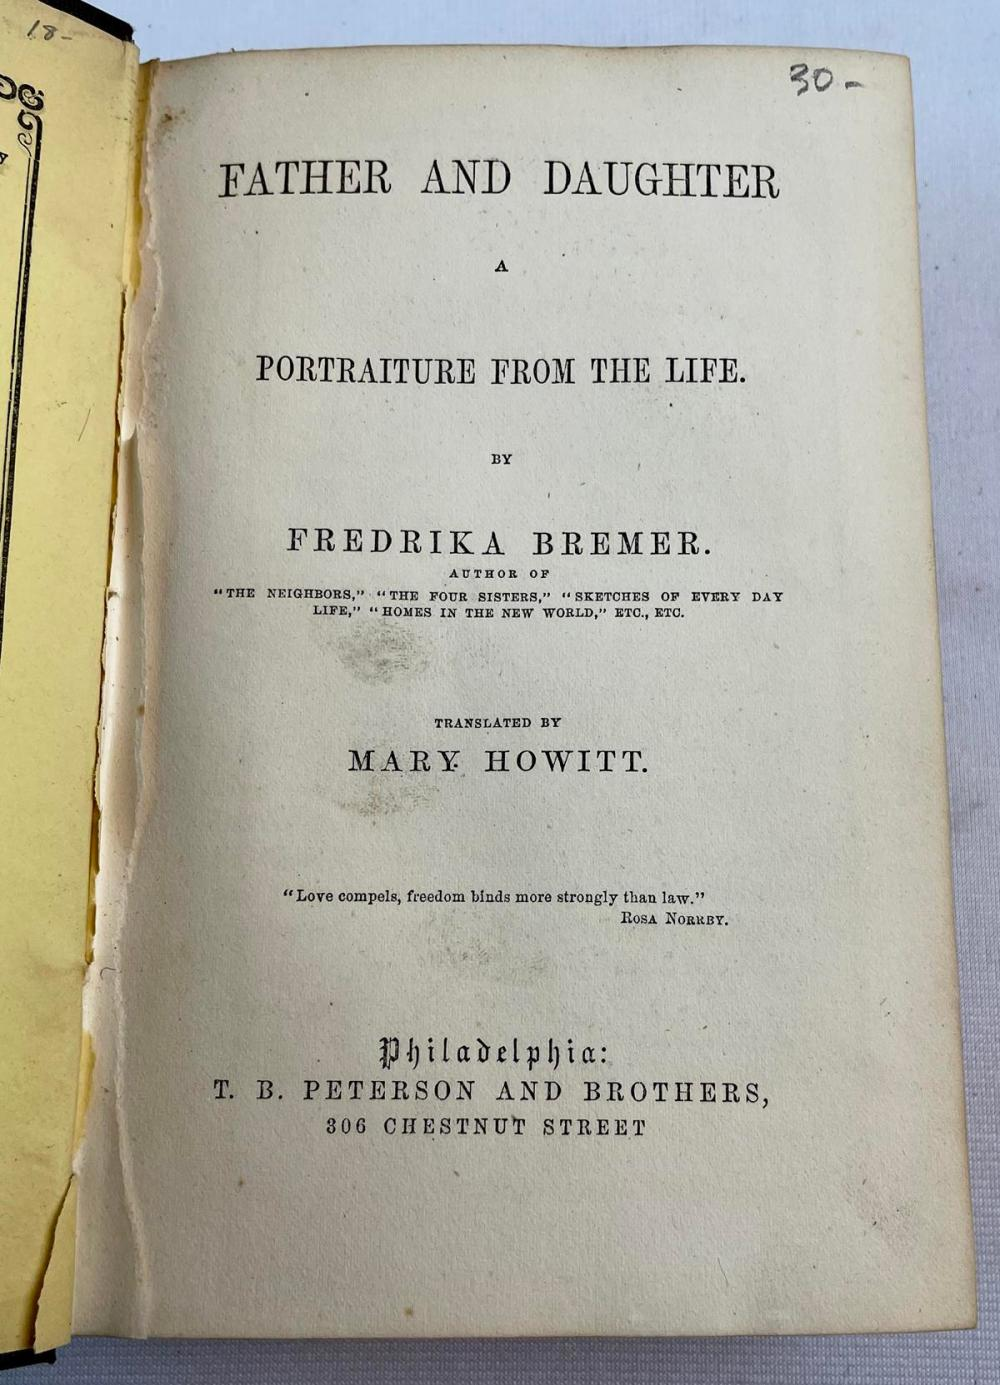 1858 Father & Daughter: A Portraiture from the Life by Fredrika Bermer by Mary Howitt FIRST EDITION